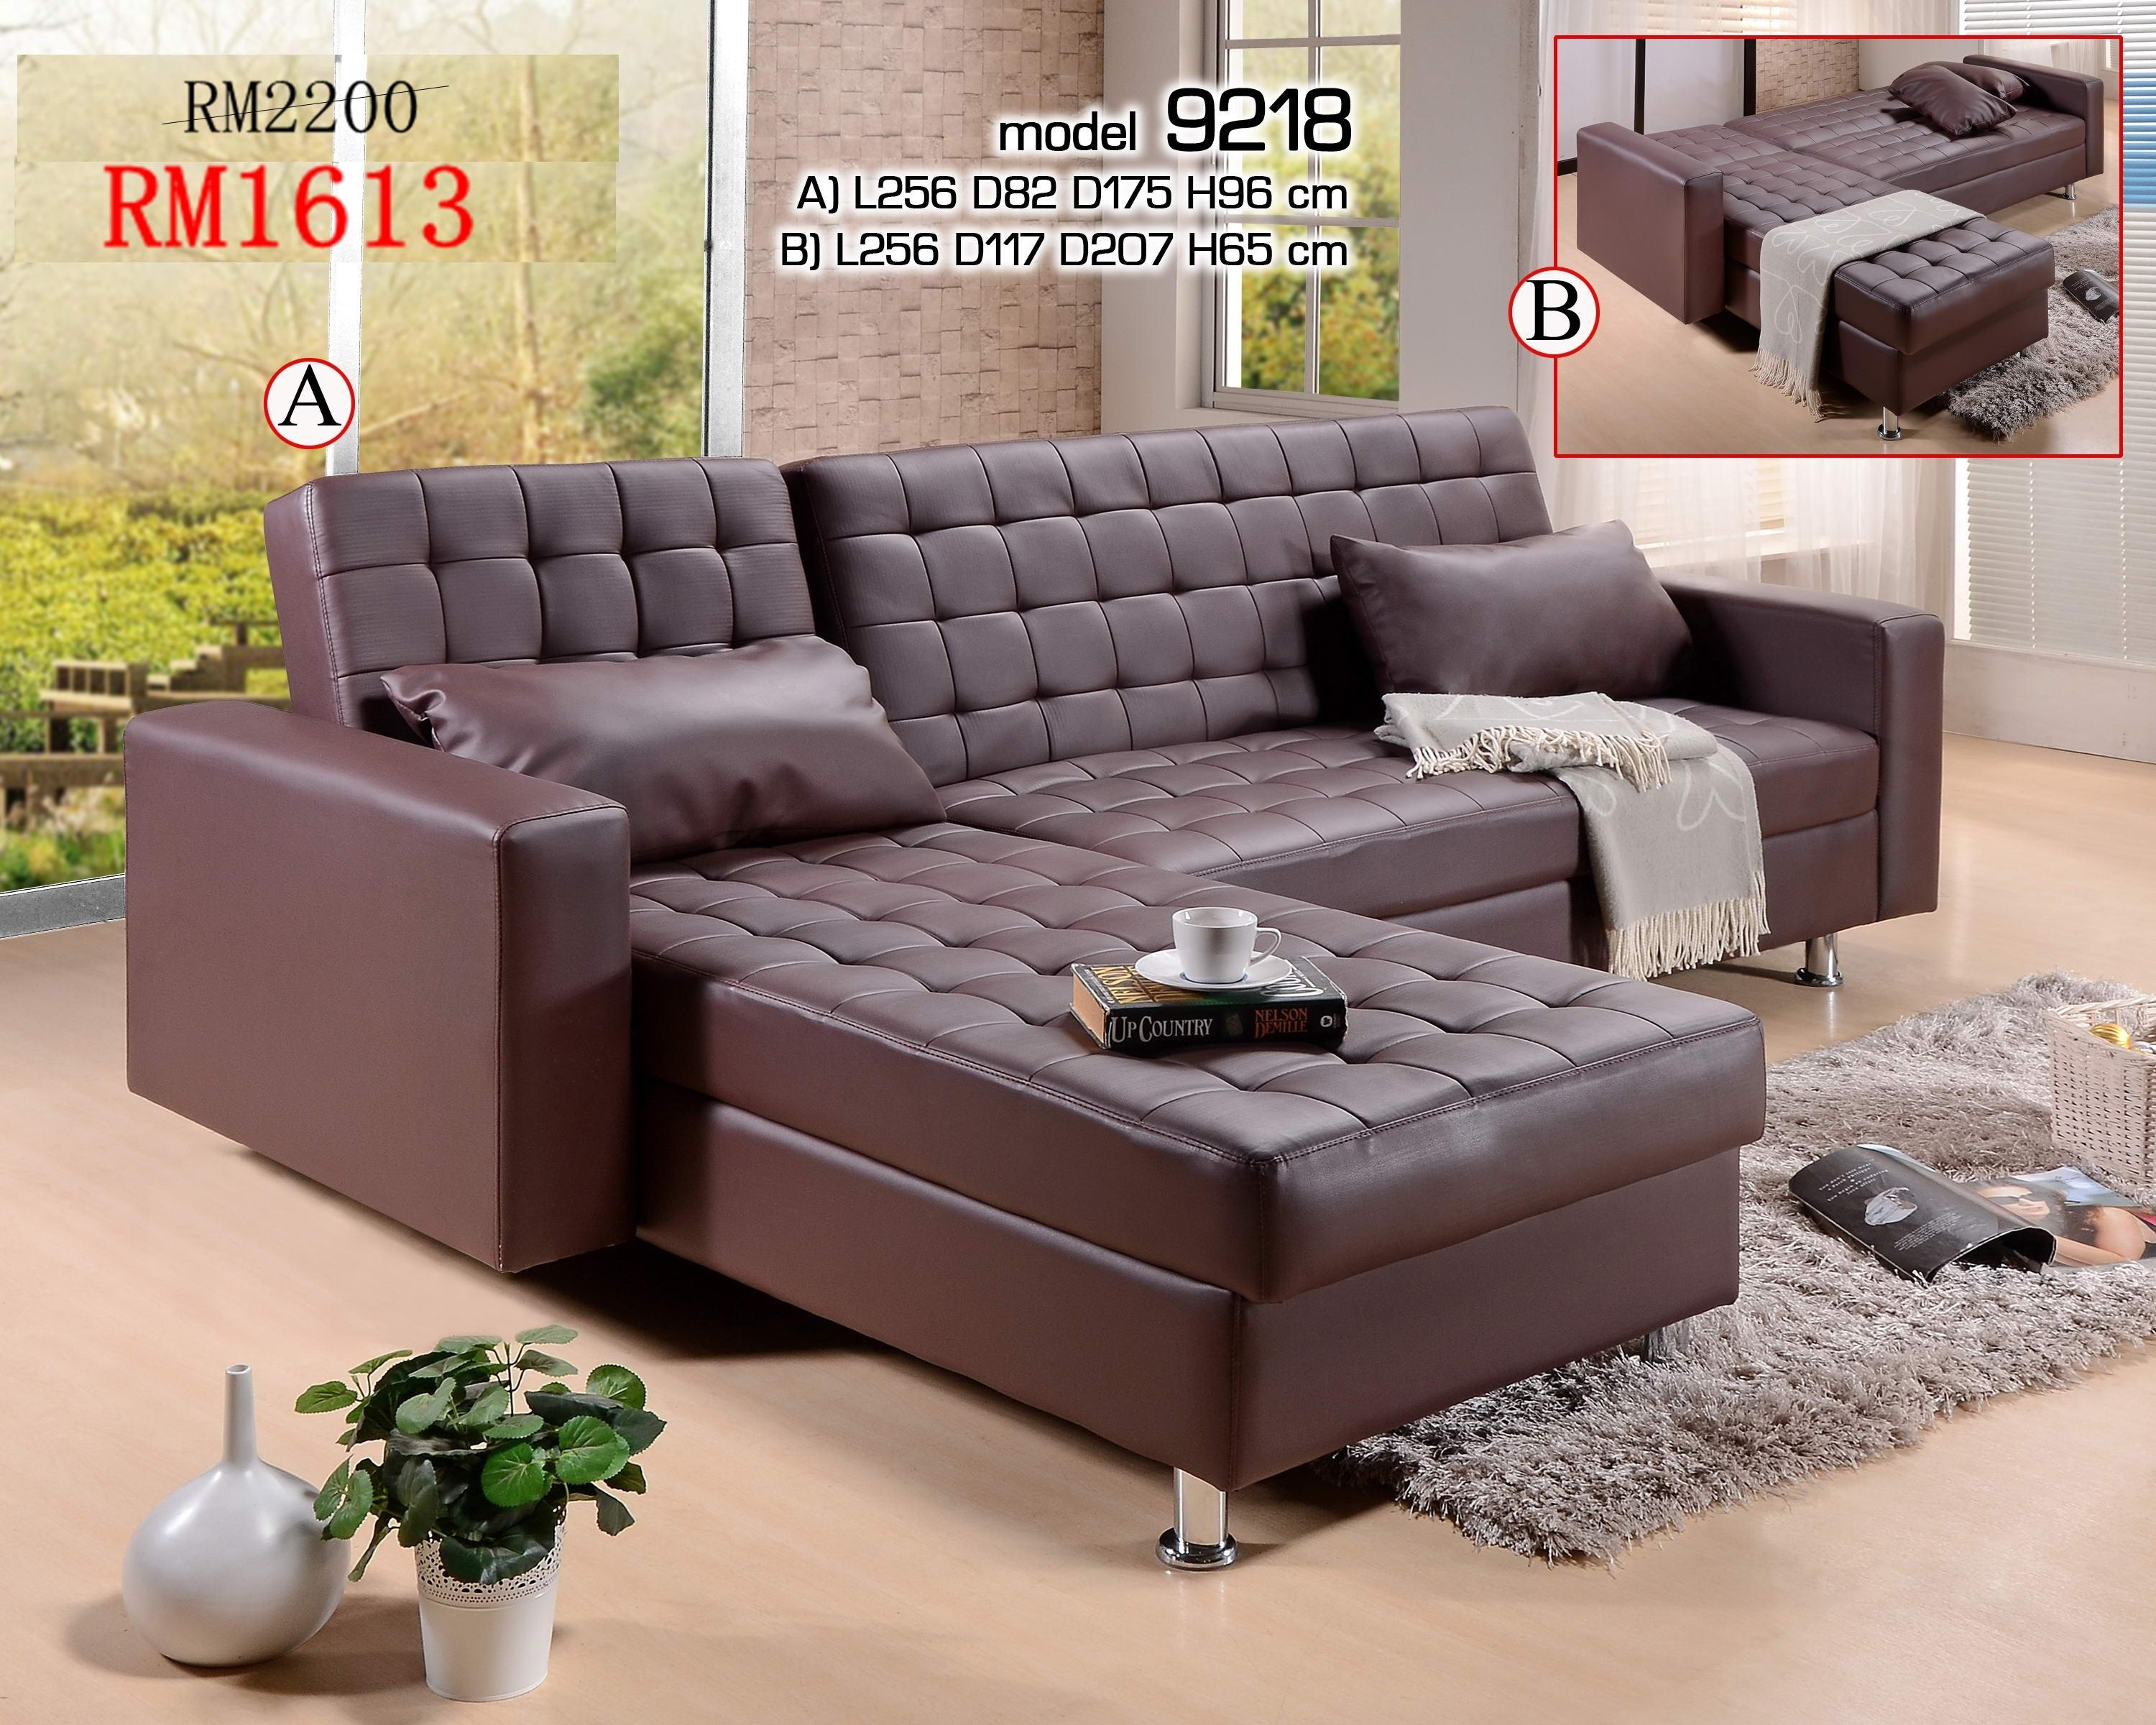 Sofas Center : Lovely Sectional Sofa Ikea L Shapededs Rv With Air Inside L Shaped Sofa Bed (Image 20 of 20)